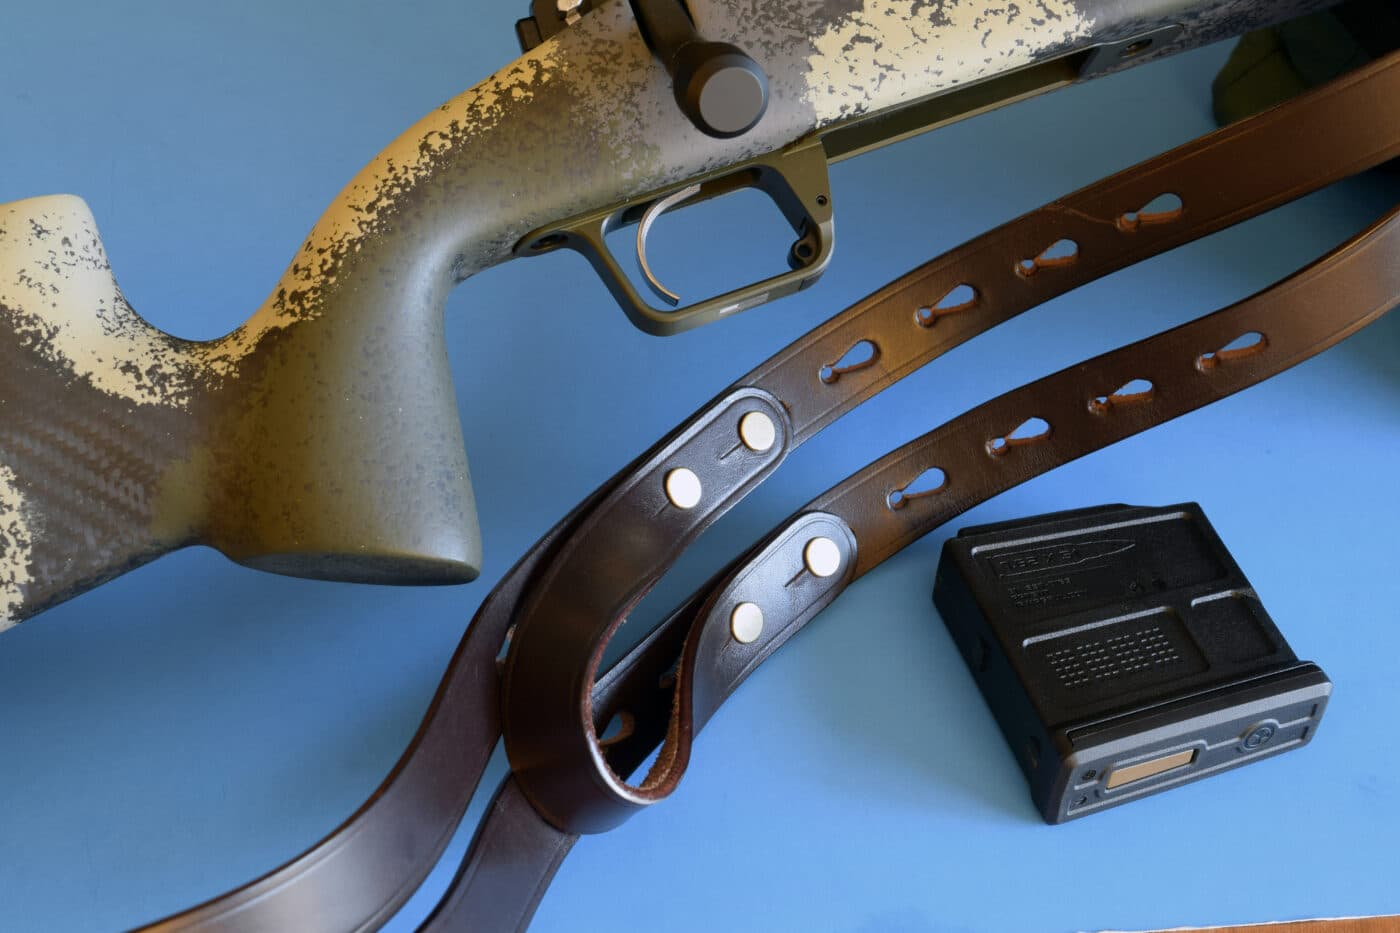 Galco Ching sling with rifle and magazine